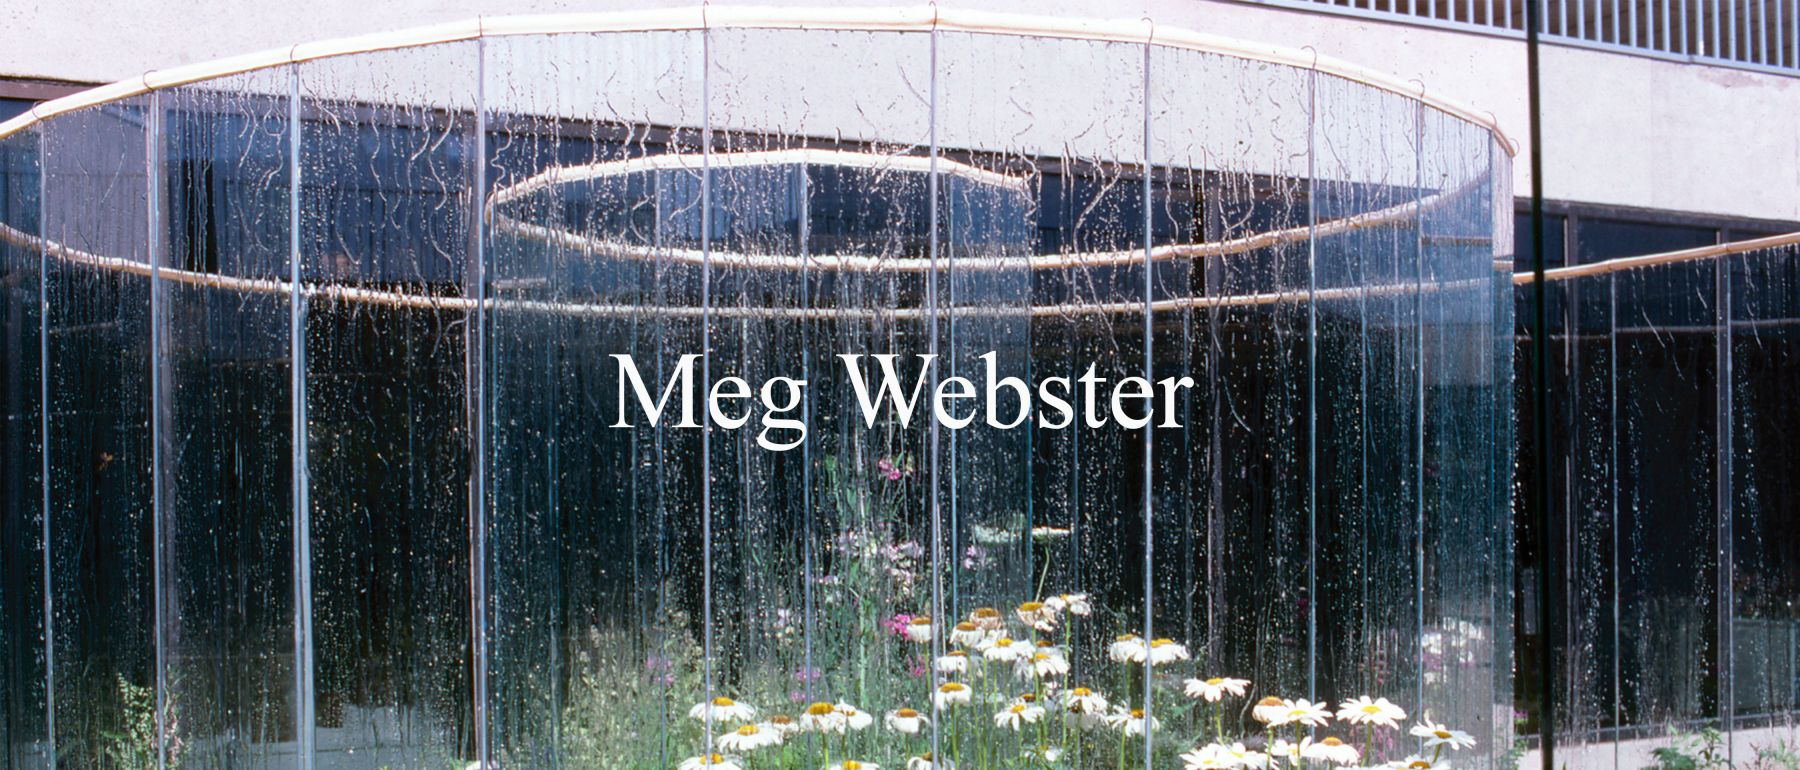 Installation view of Meg Webster's glass spiral, surrounded by growing plants and flowers.